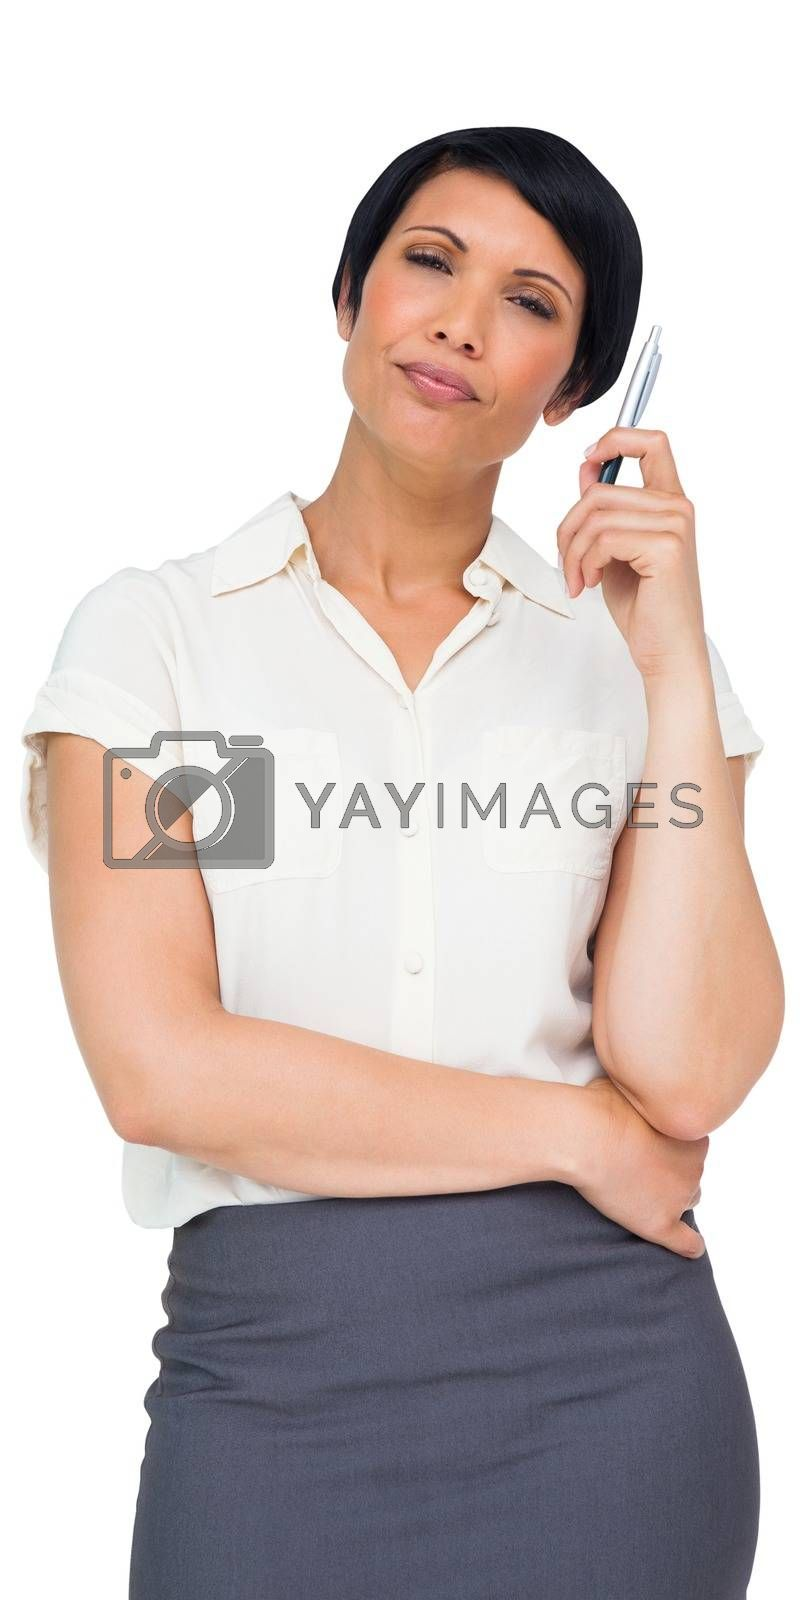 Royalty free image of Thoughtful brown haired businesswoman in skirt by Wavebreakmedia